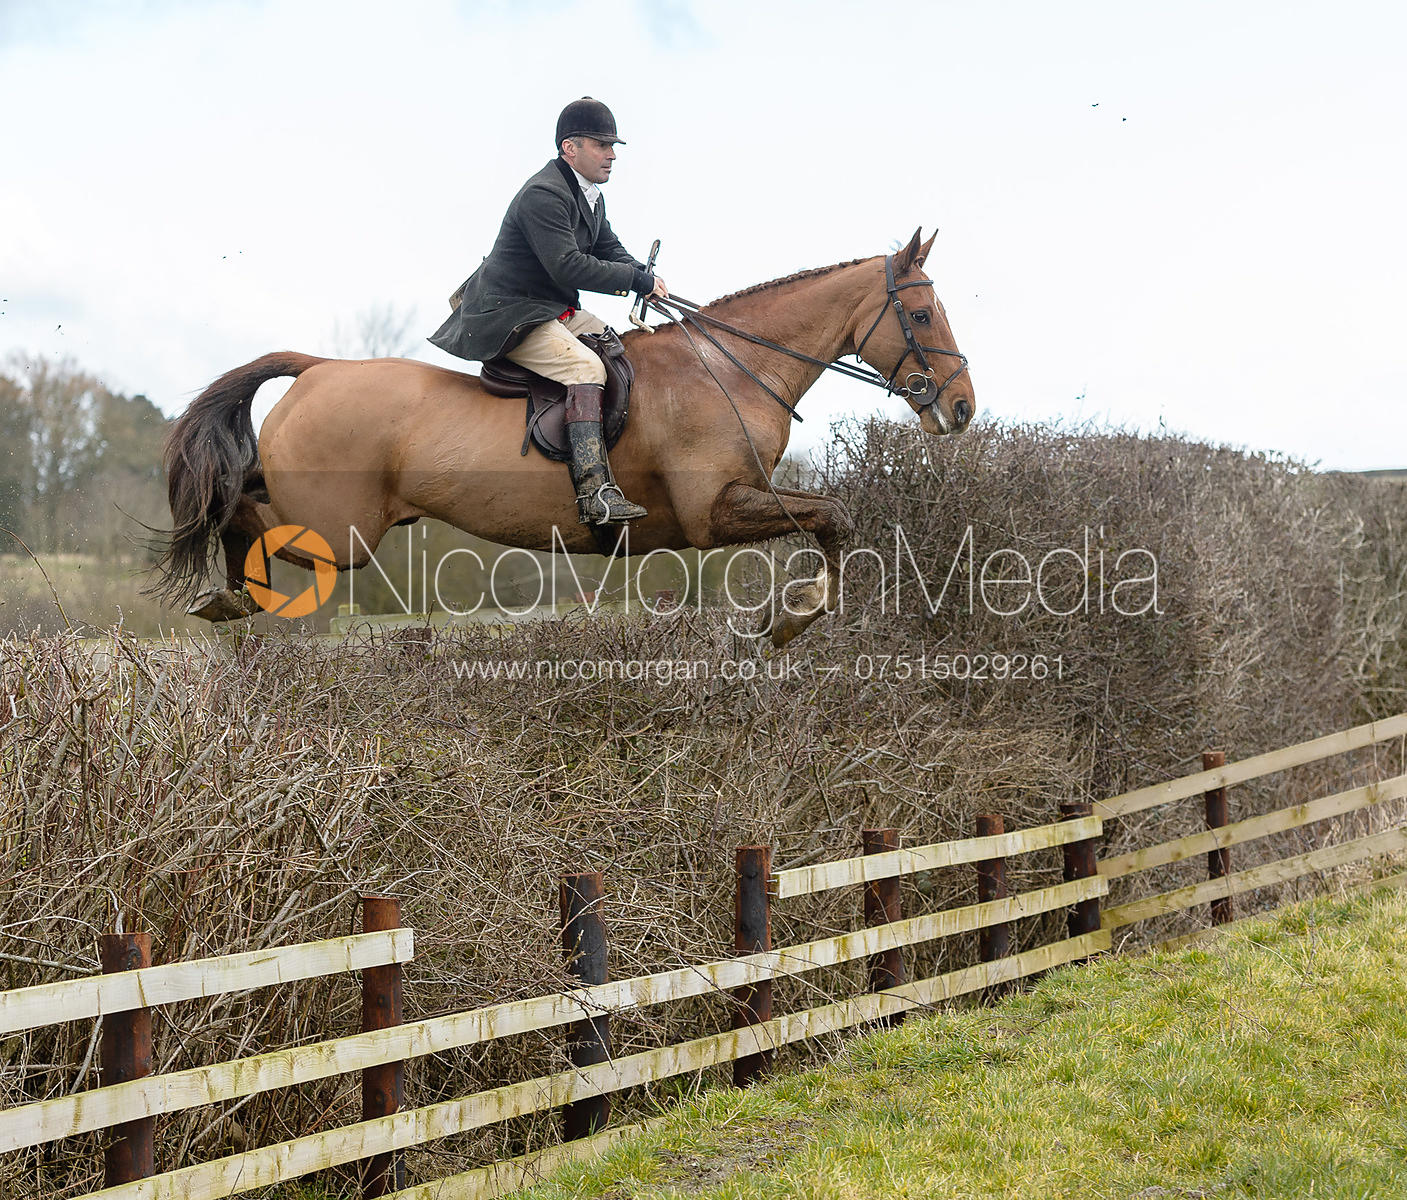 Stephen Swiers jumping a fence at Burrough House